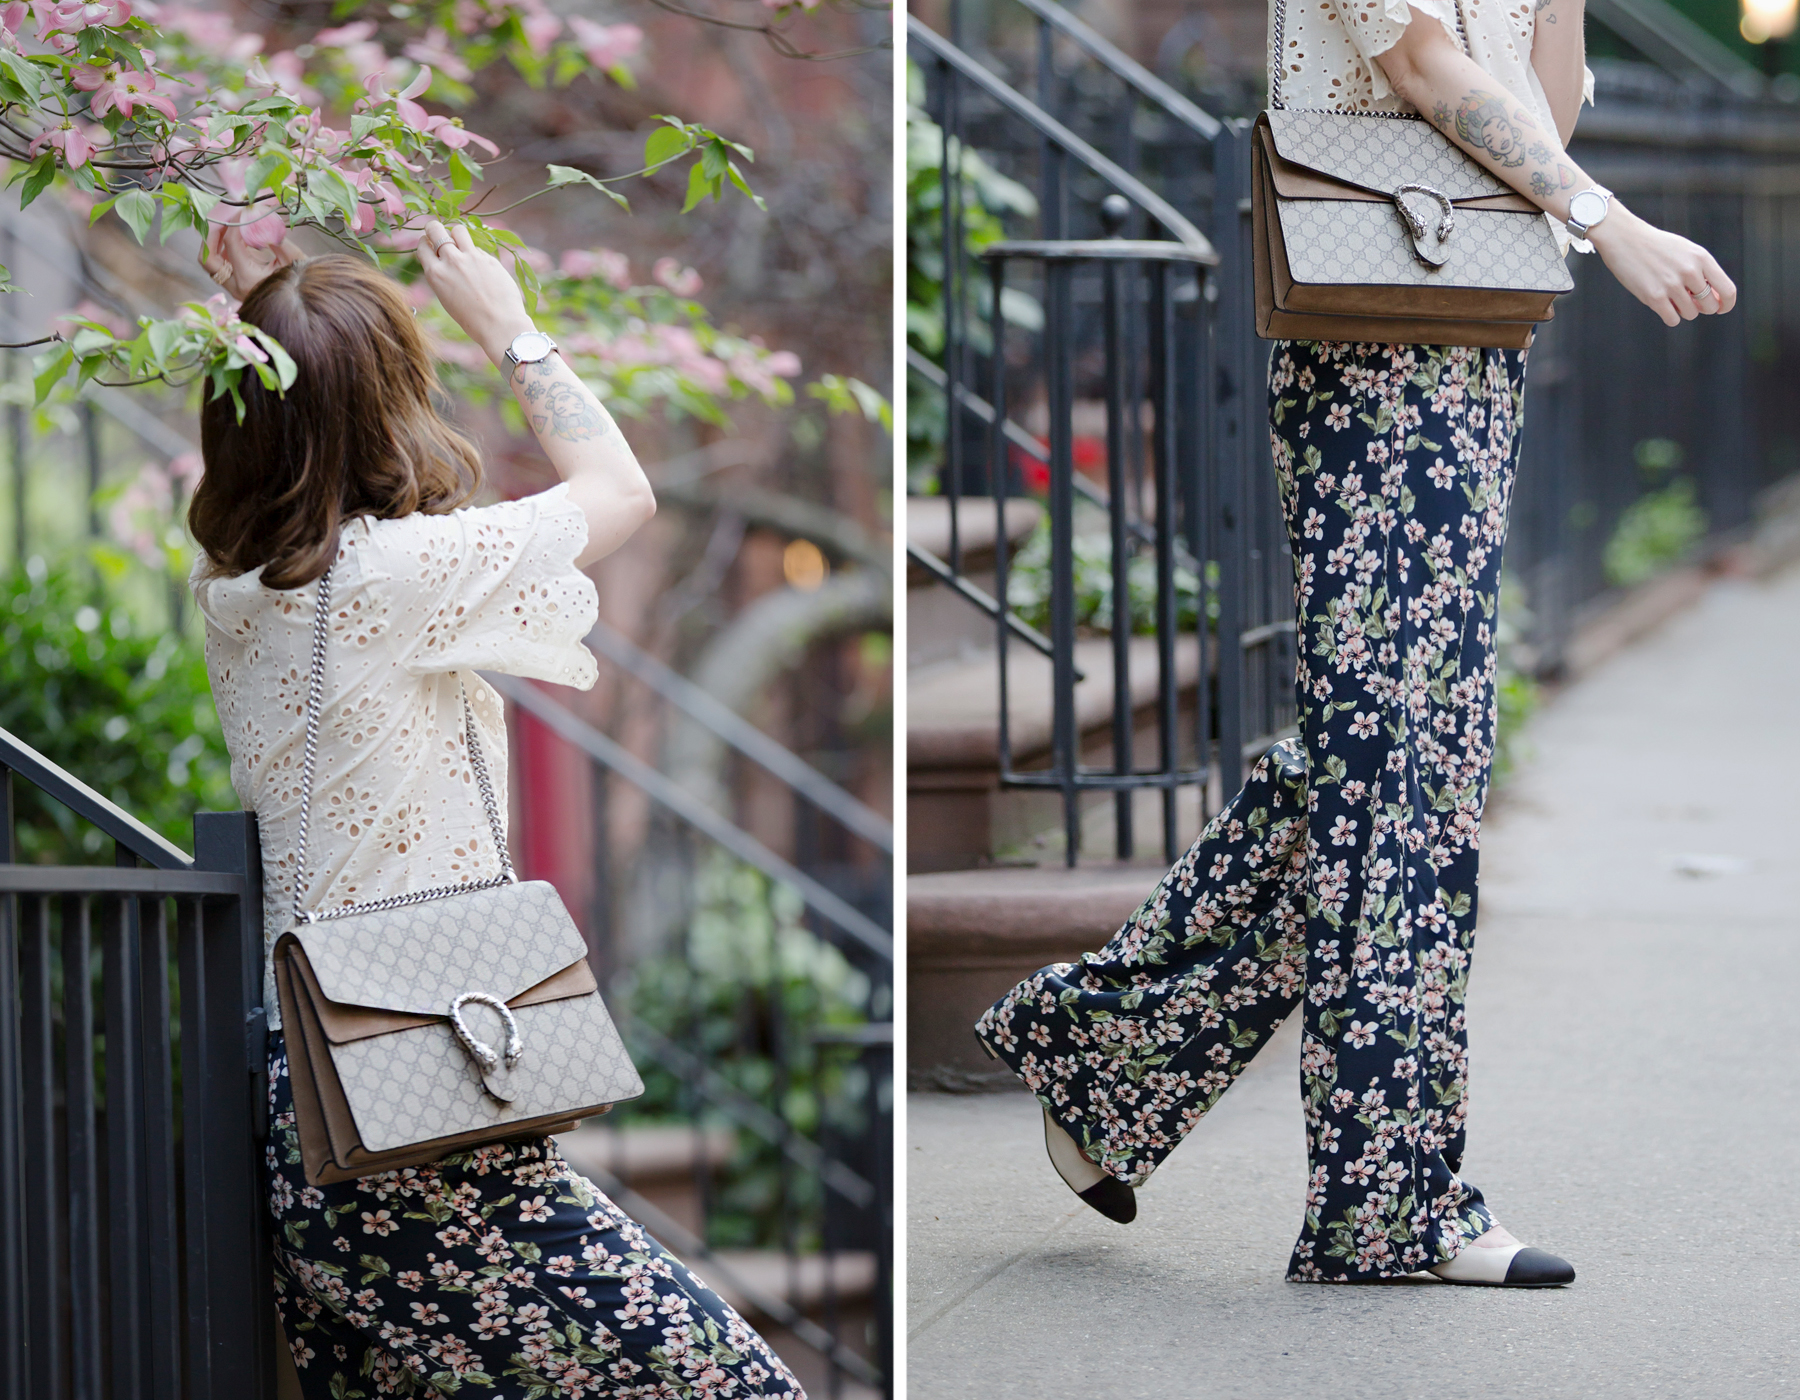 new york city streetstyle fashion fashionblogger mint&berry persol mister spex gucci dionysus luxury fashion styling look summer flowers floral cats & dogs modeblog ricarda schernus fashionblogger germany 1